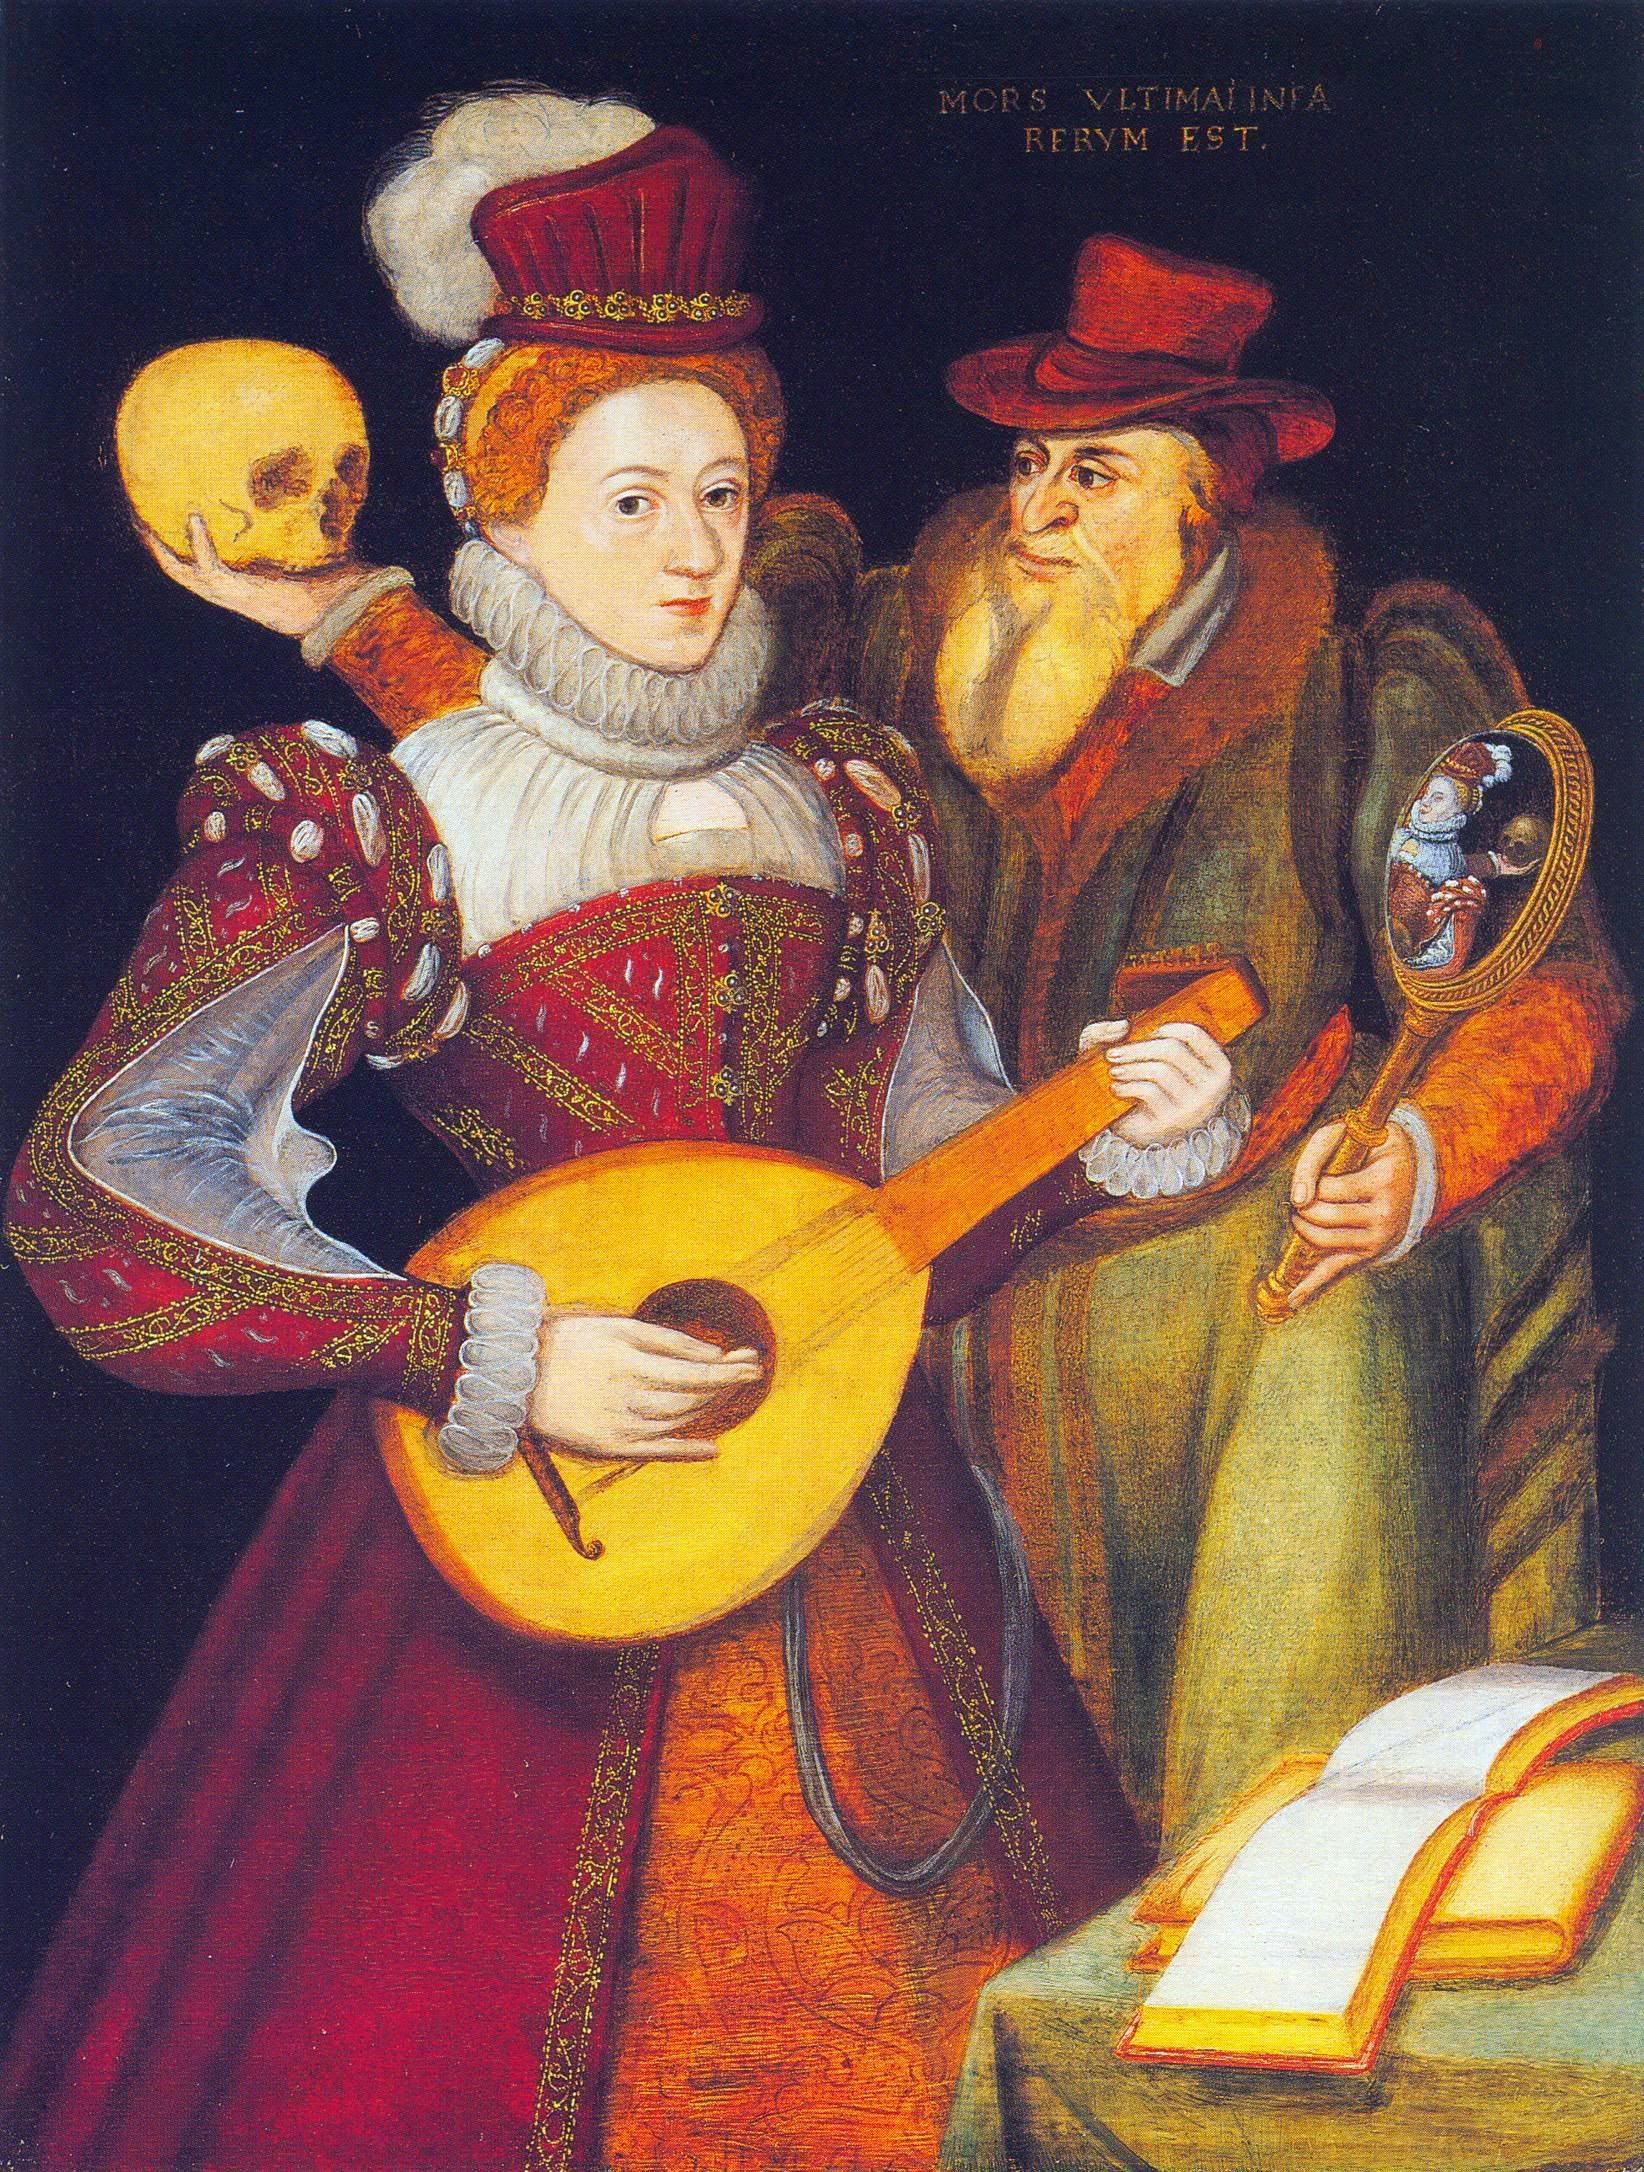 Caption: Queen Elizabeth I playing the lute